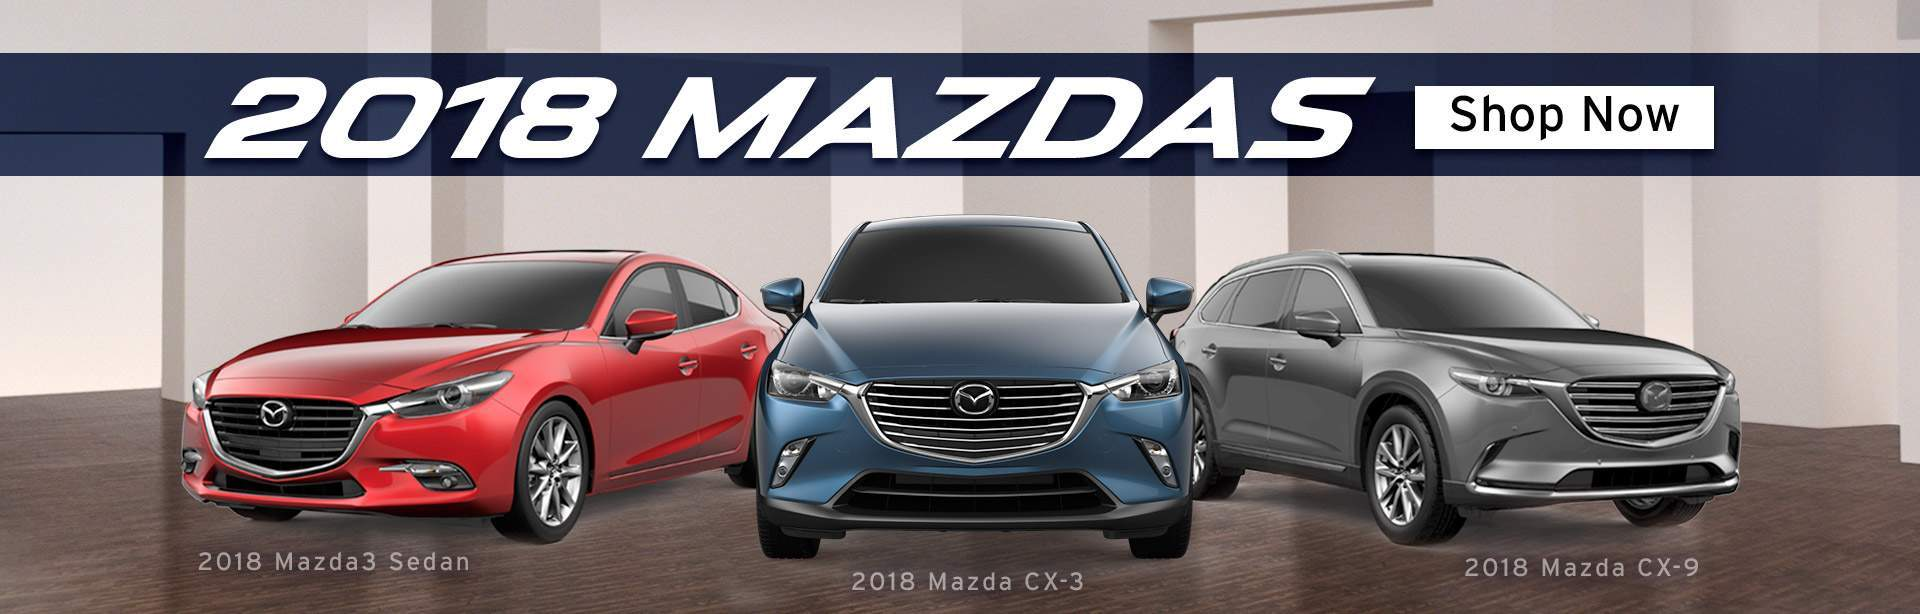 mazda locations parts used auto dealership dealer perfect